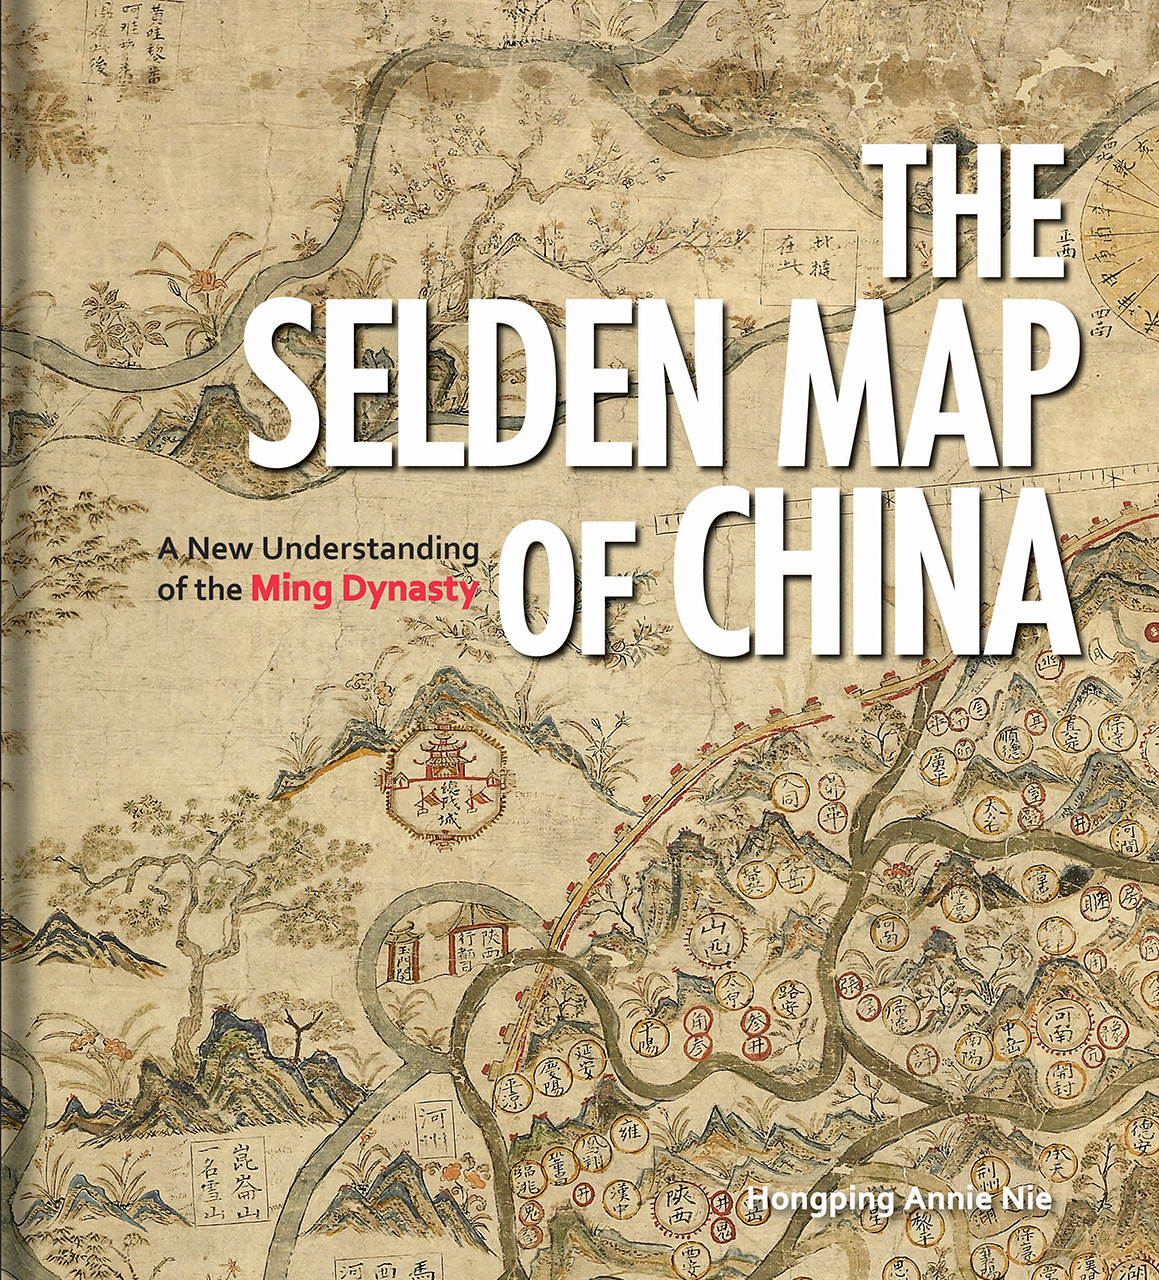 selden map of china The Selden Map Of China A New Understanding Of The Ming Dynasty Nie